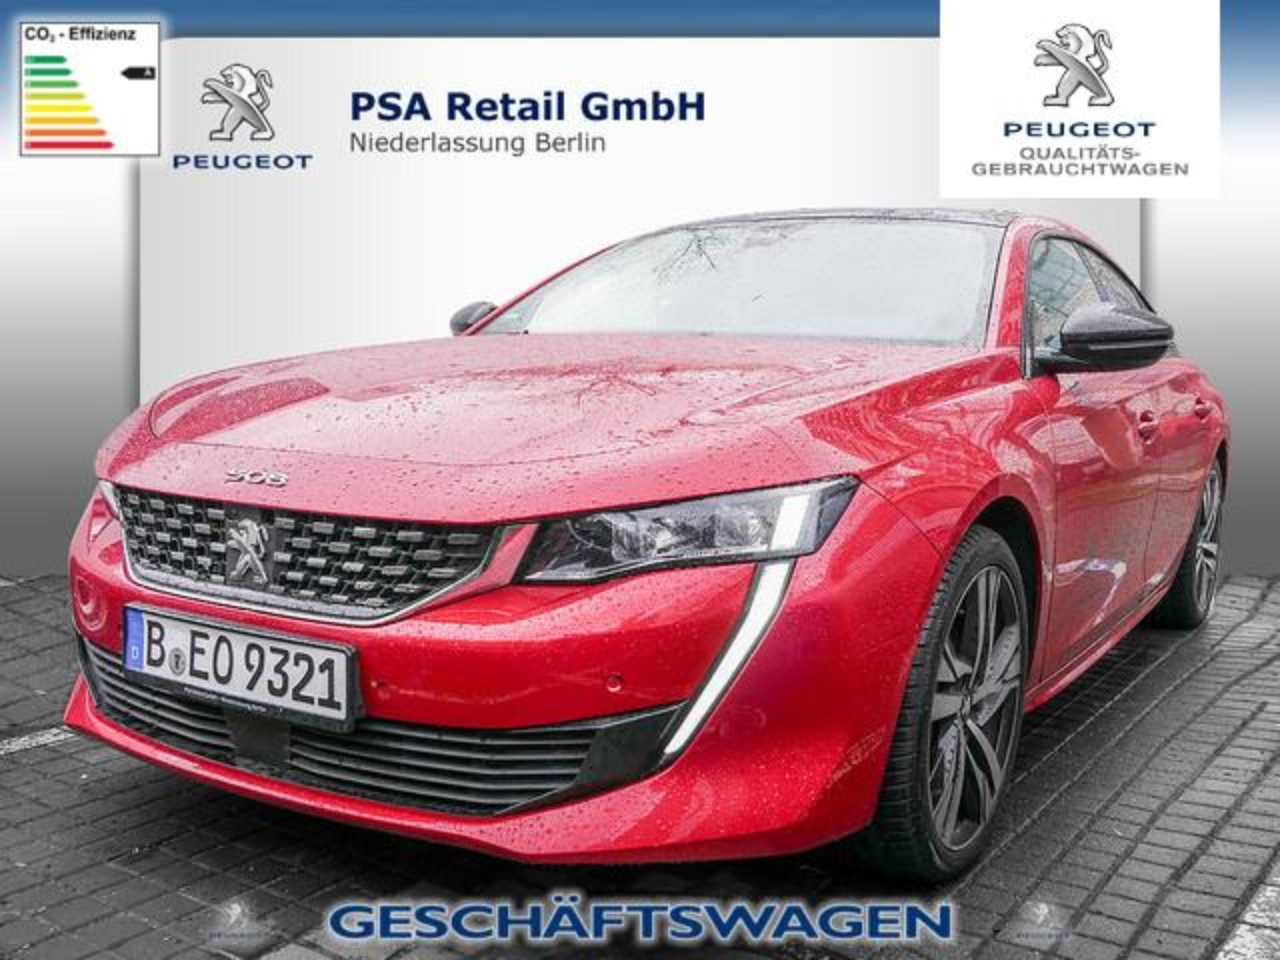 Peugeot 508 GT 1.6 PureTech 225 SHZ LED NIGHT VISION ACC